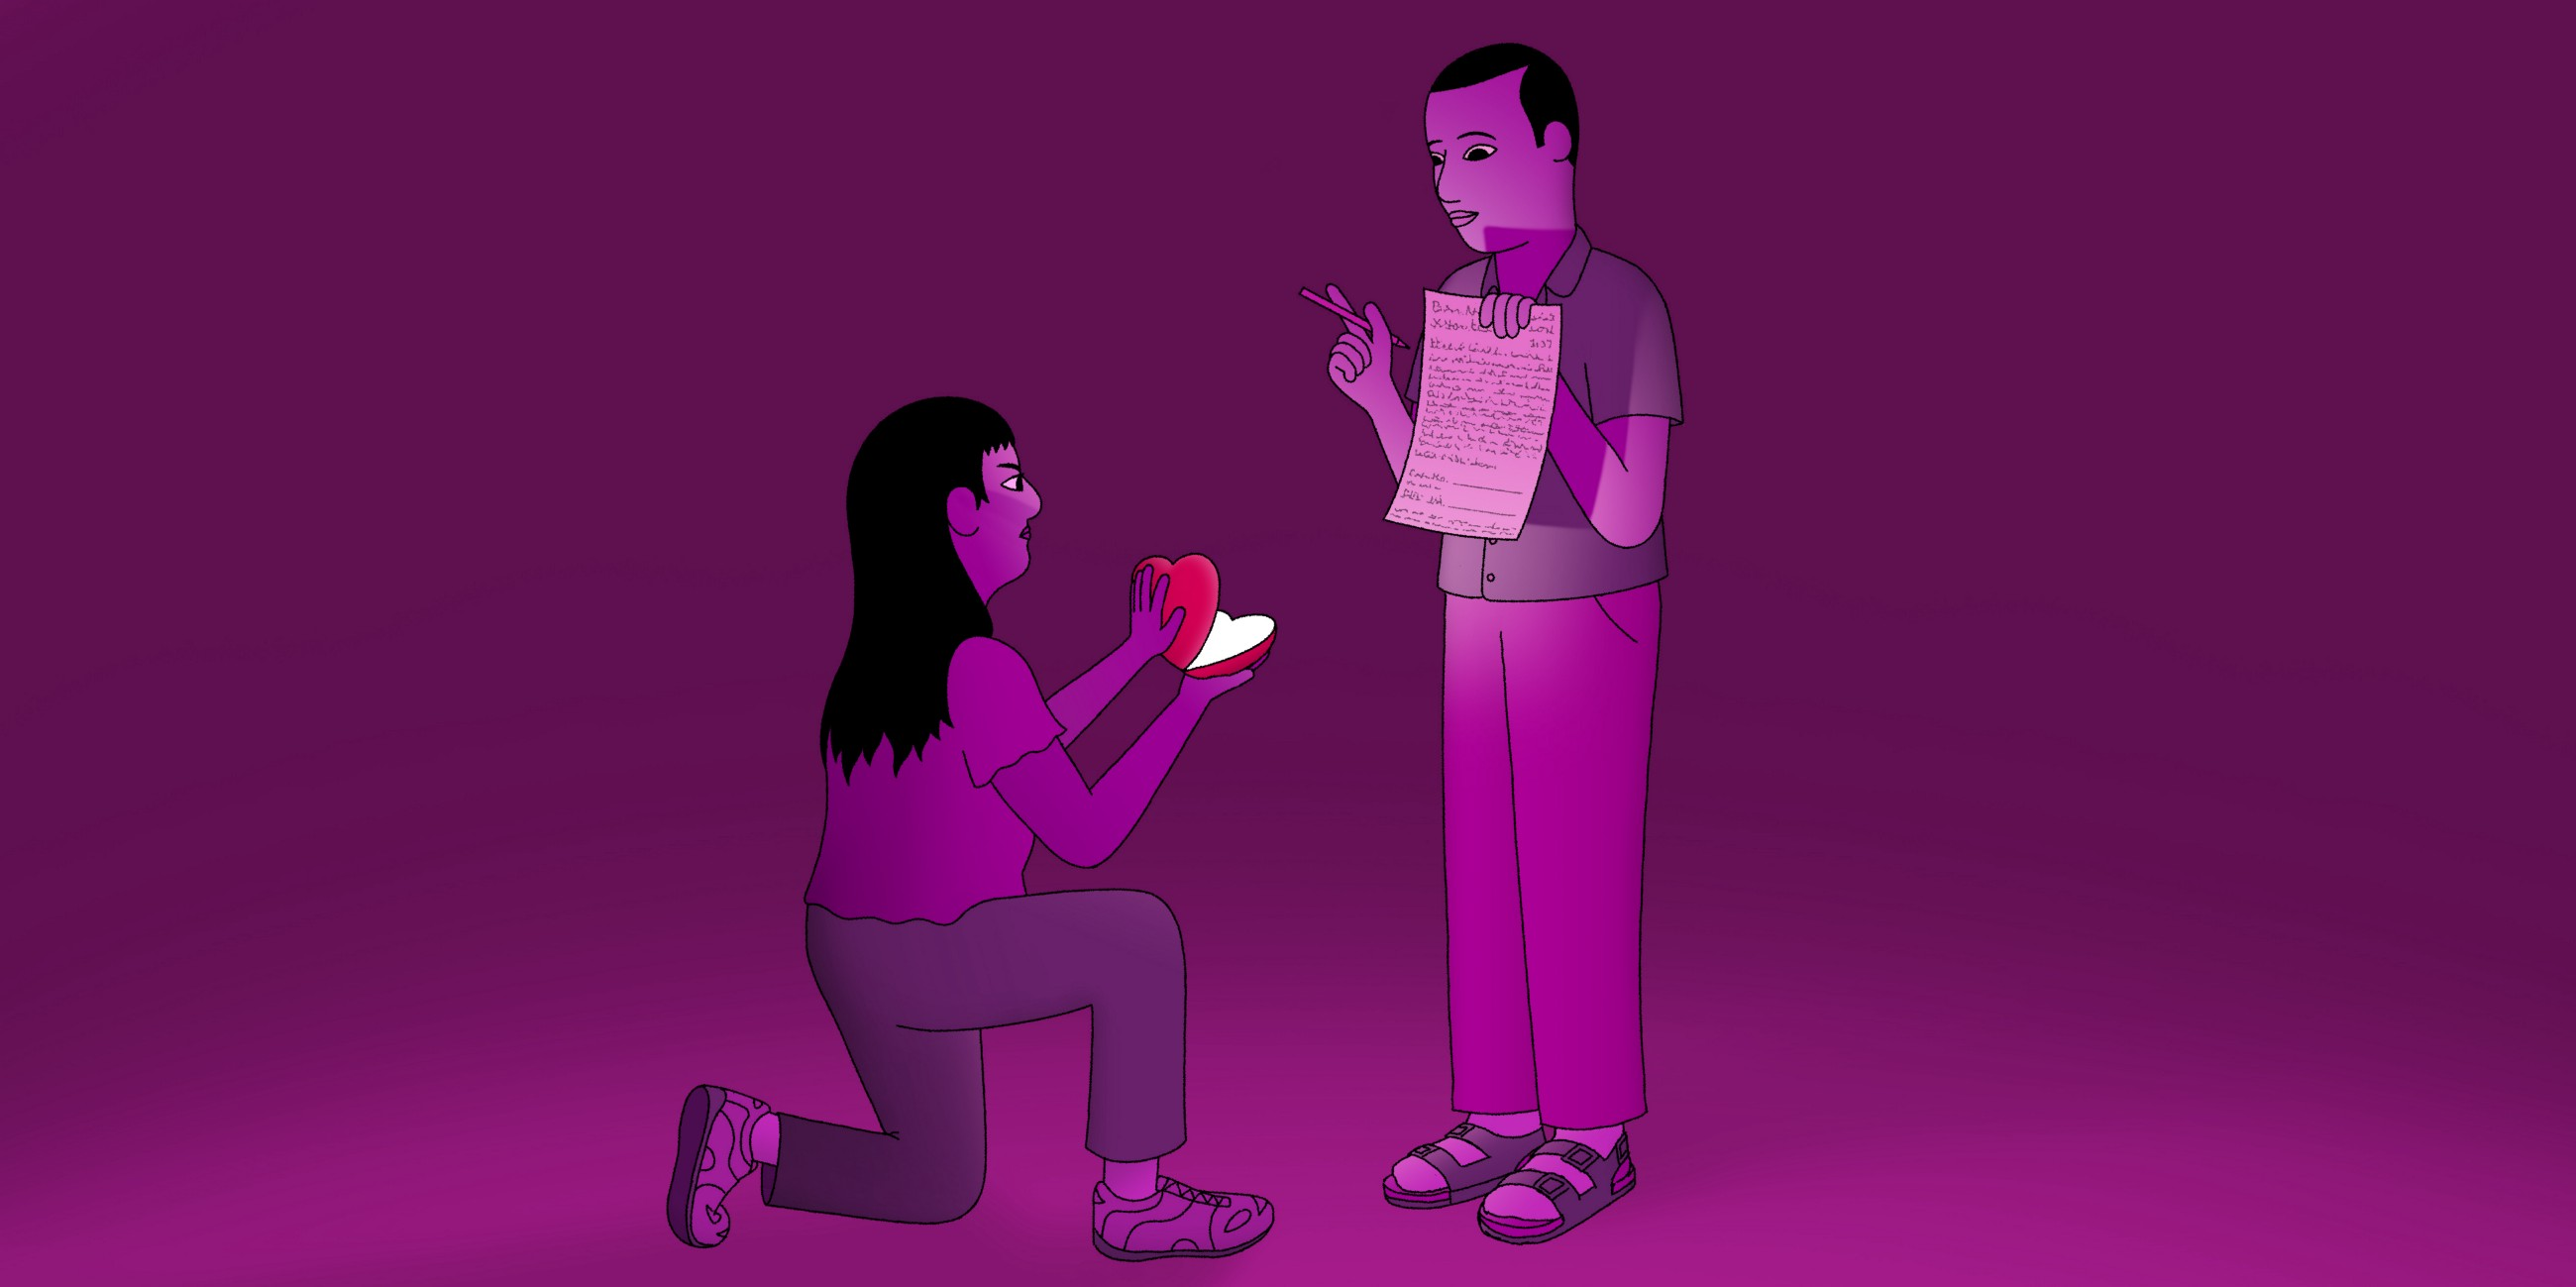 How Can I Tell My Partner I'm Mad About Having a Prenup?